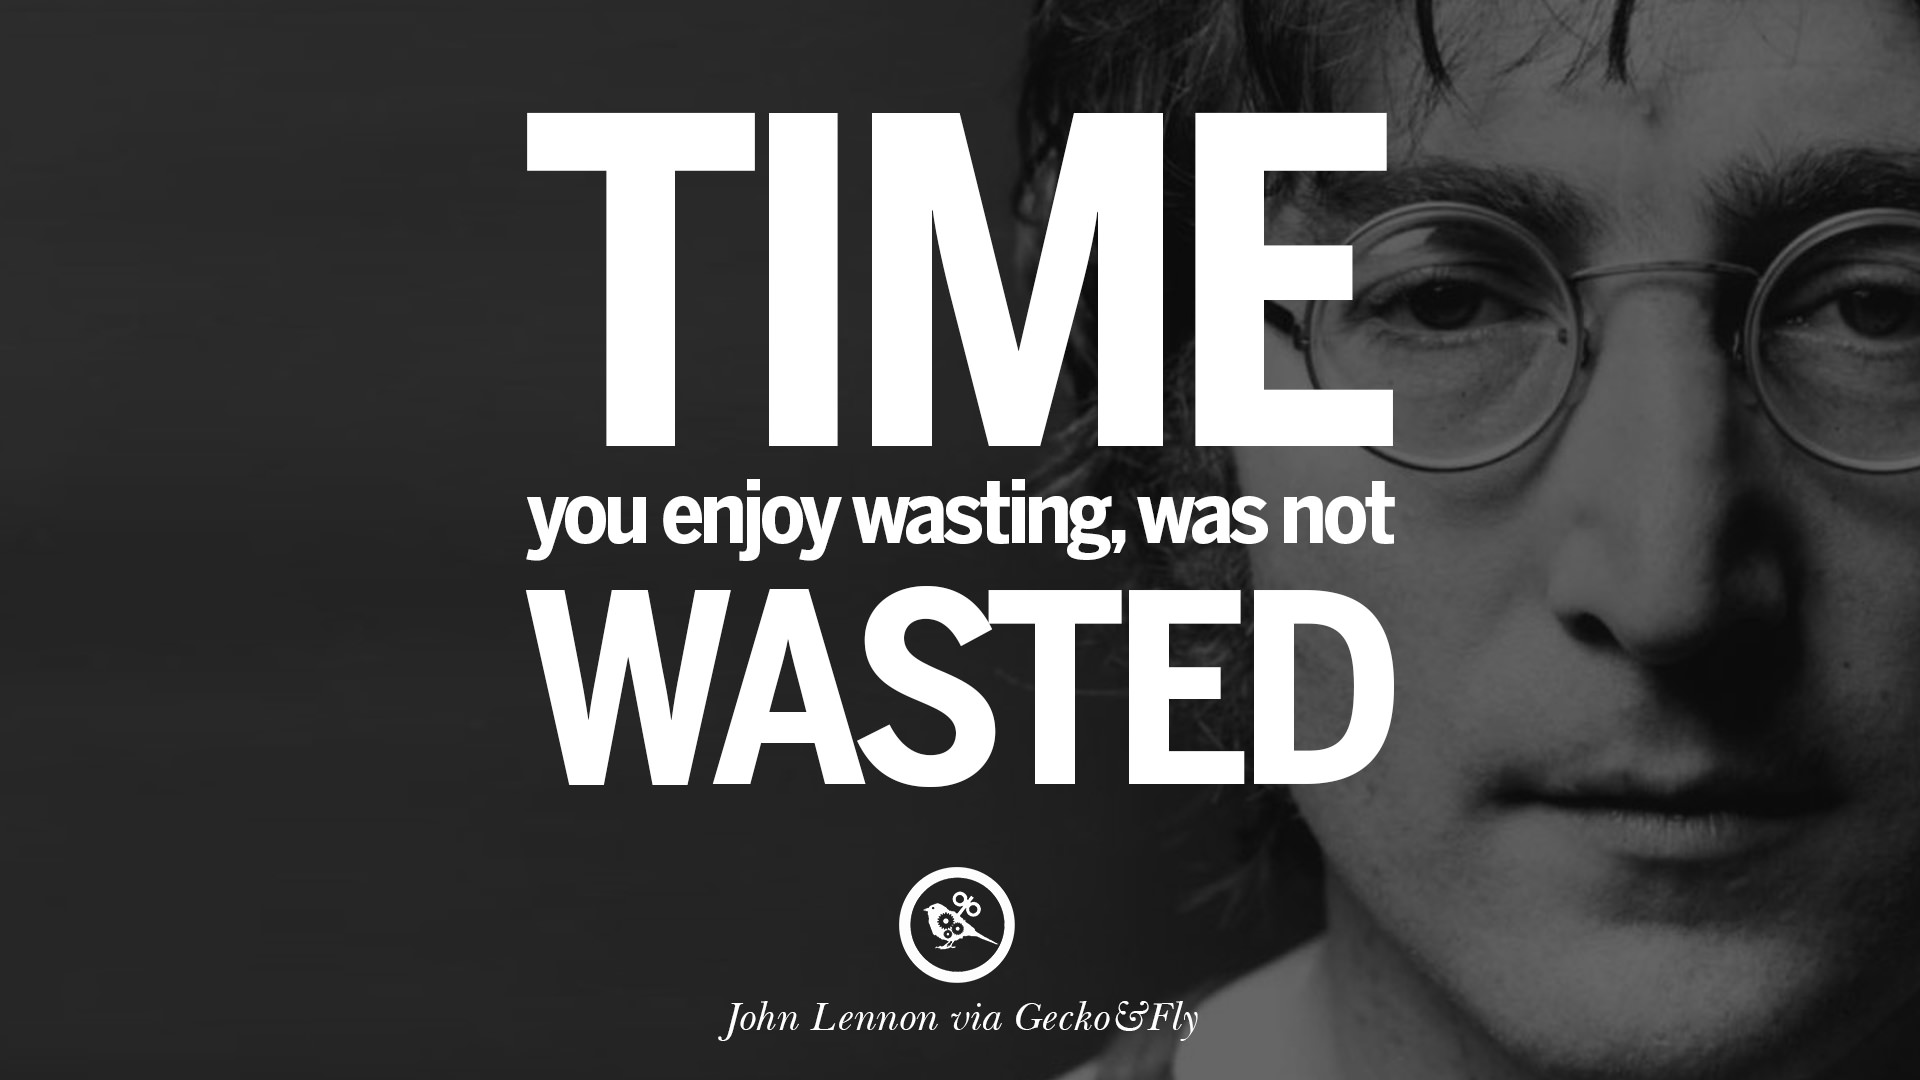 Wasting Time Quotes Wallpaper 15 John Lennon Quotes On Love Imagination Peace And Death